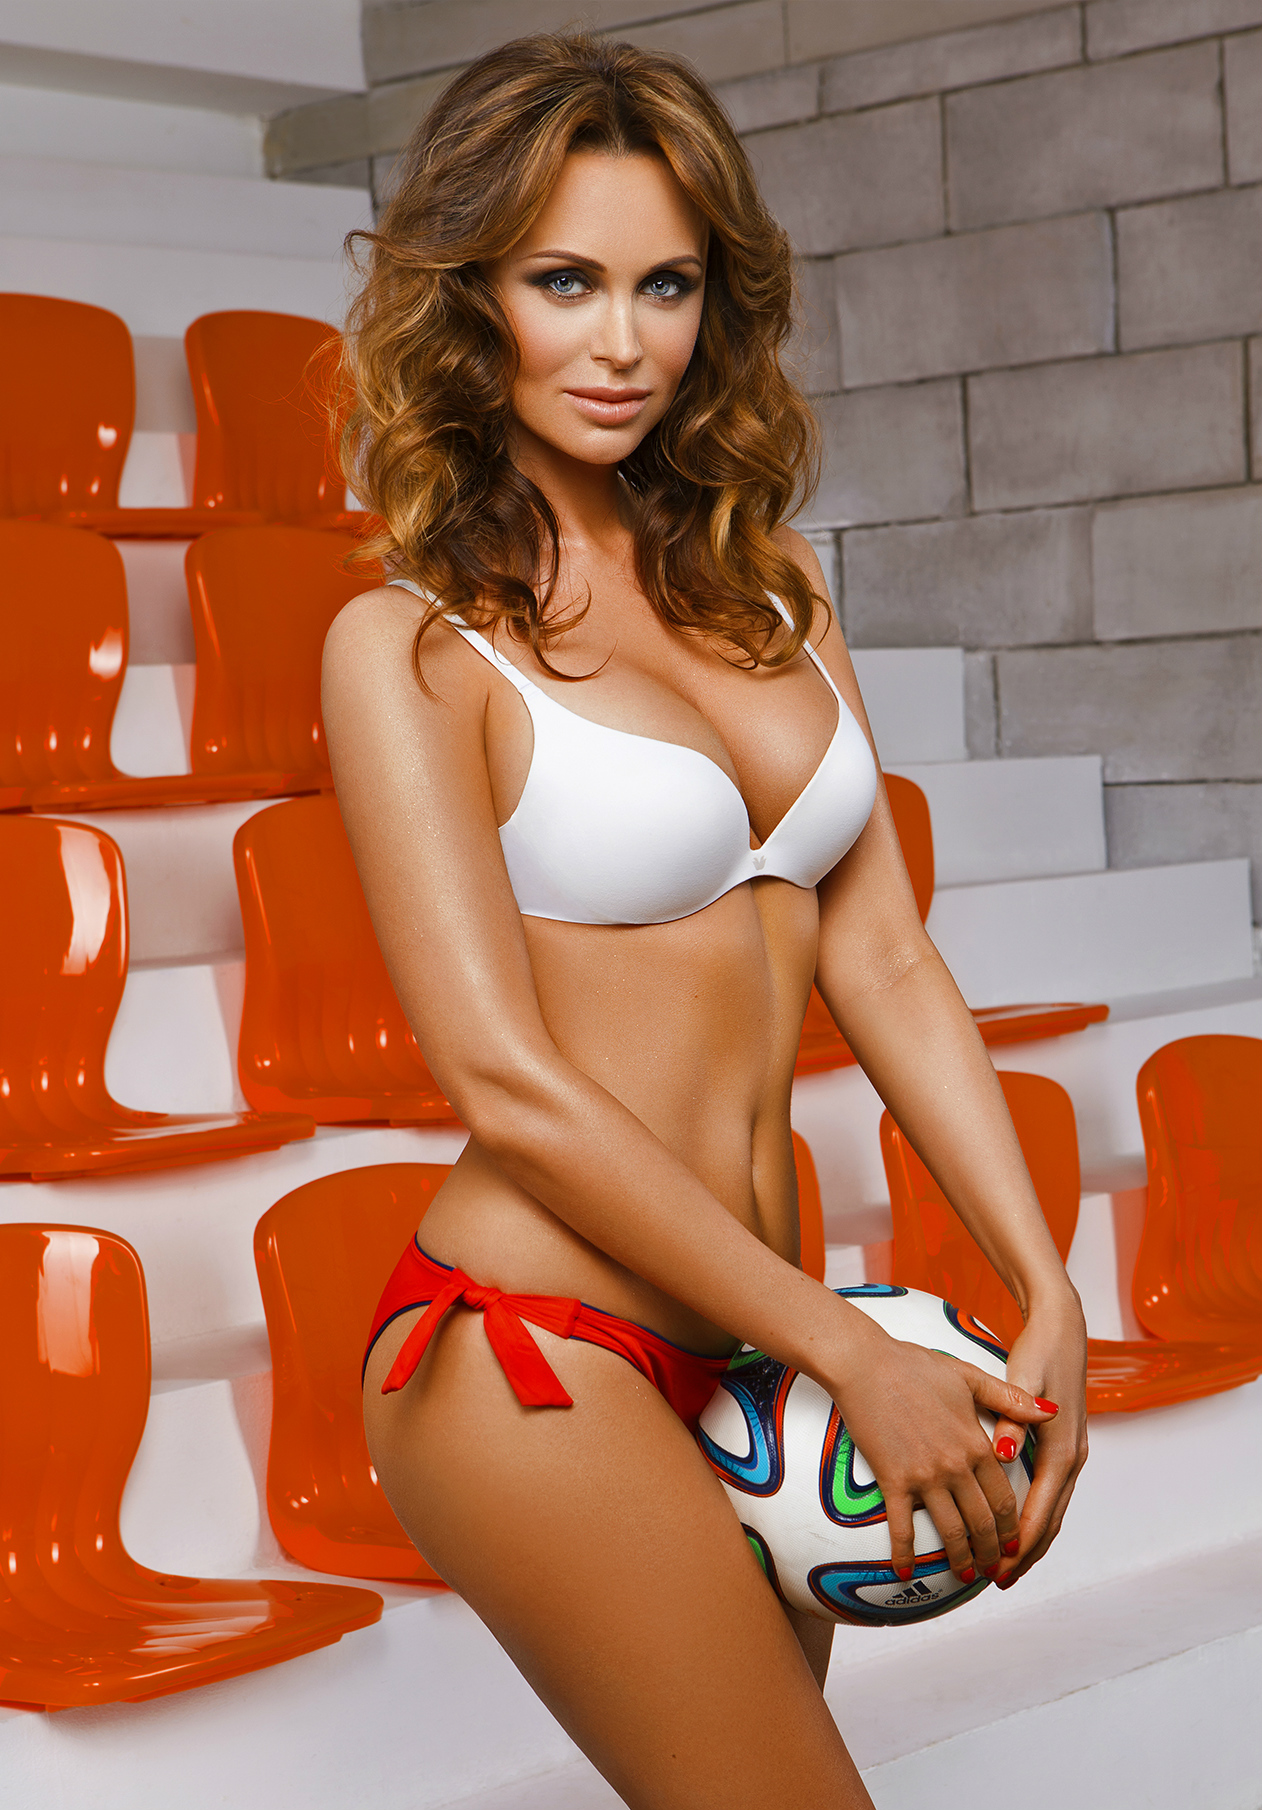 23-hottest-wives-and-girlfriends-of-nfl-and-soccer-players-06